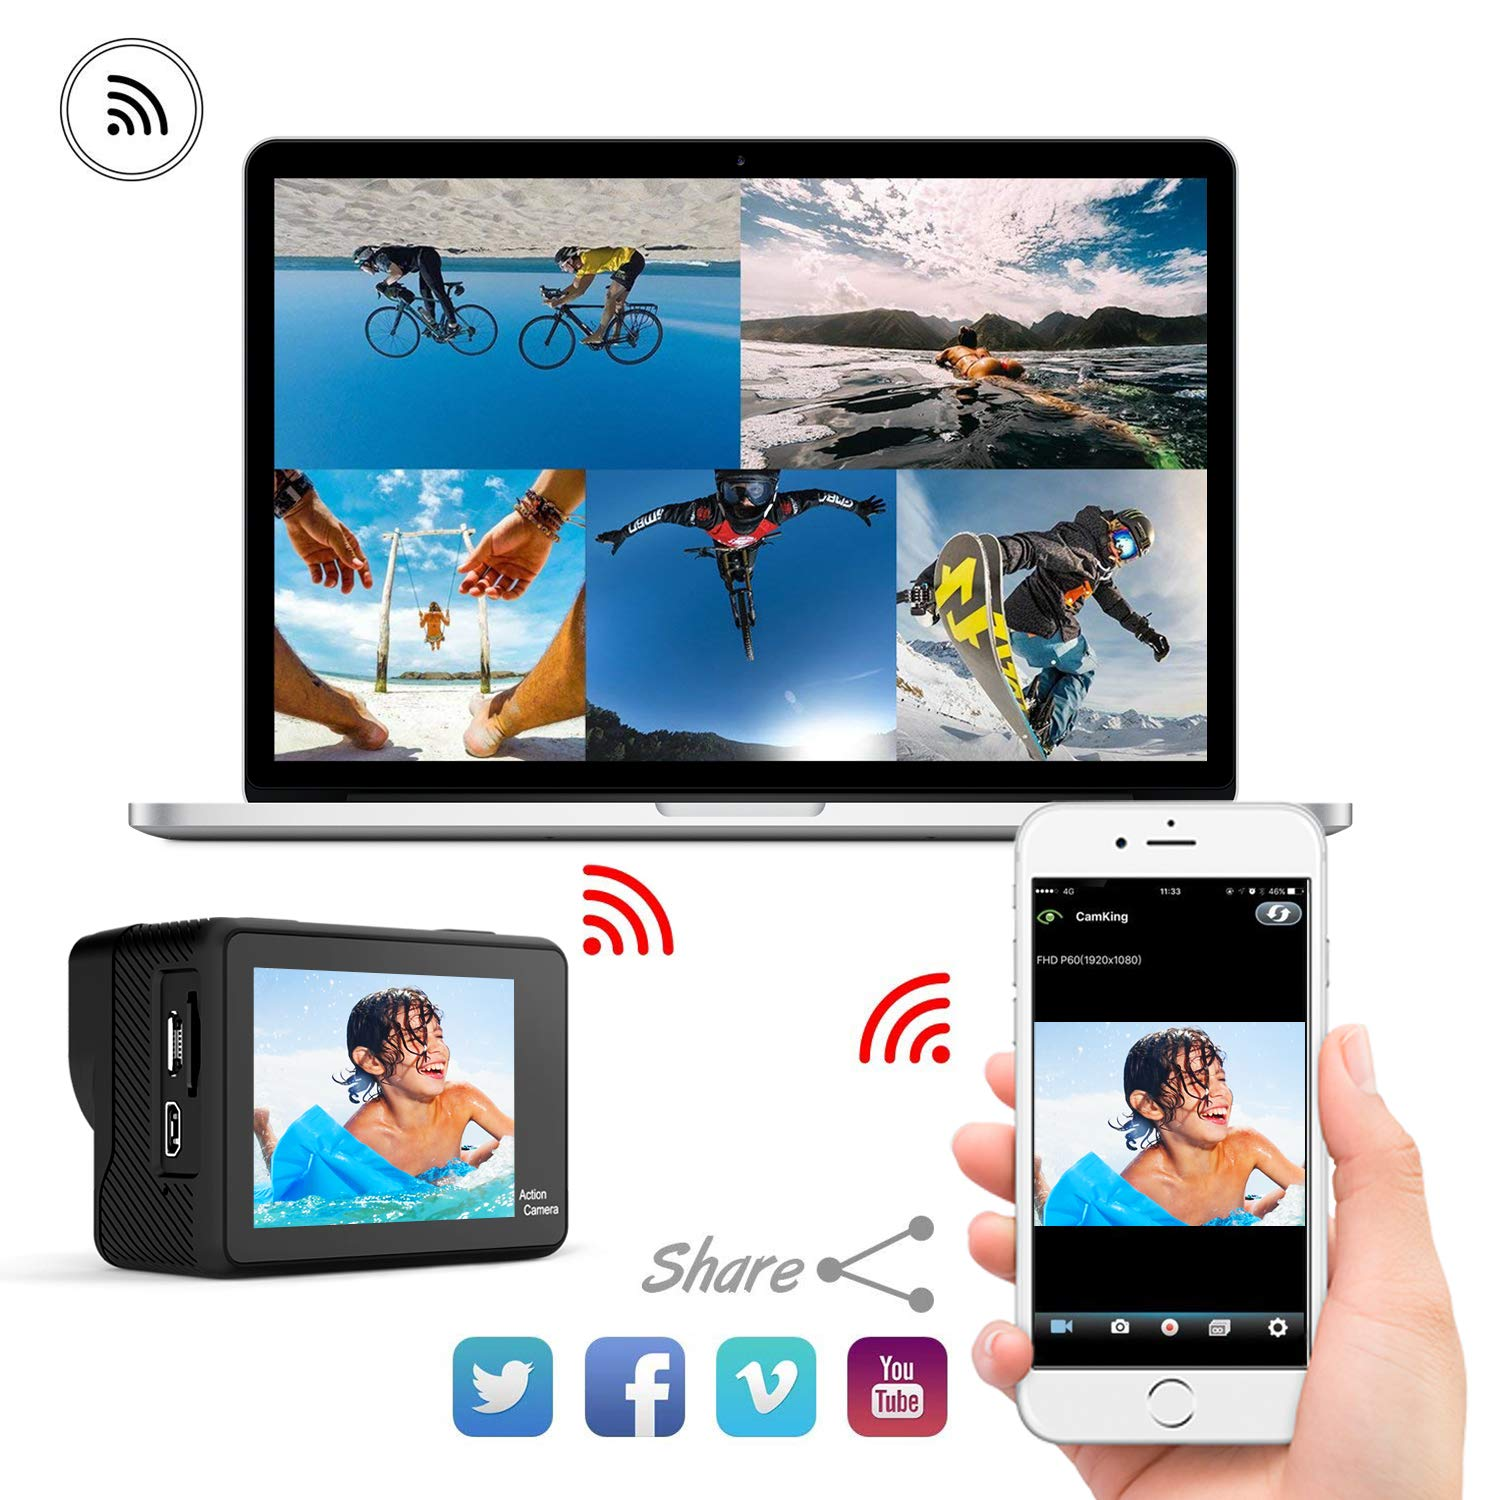 WiMiUS 4K Action Camera 2 Inch Touch Screen 16MP WiFi Sports Camera 30M Underwater Waterproof Camcorder 170 Degree Wide Angle Lens with 2 Rechargeable 1050mAh Batteries and Mounting Accessories by WiMiUS (Image #6)